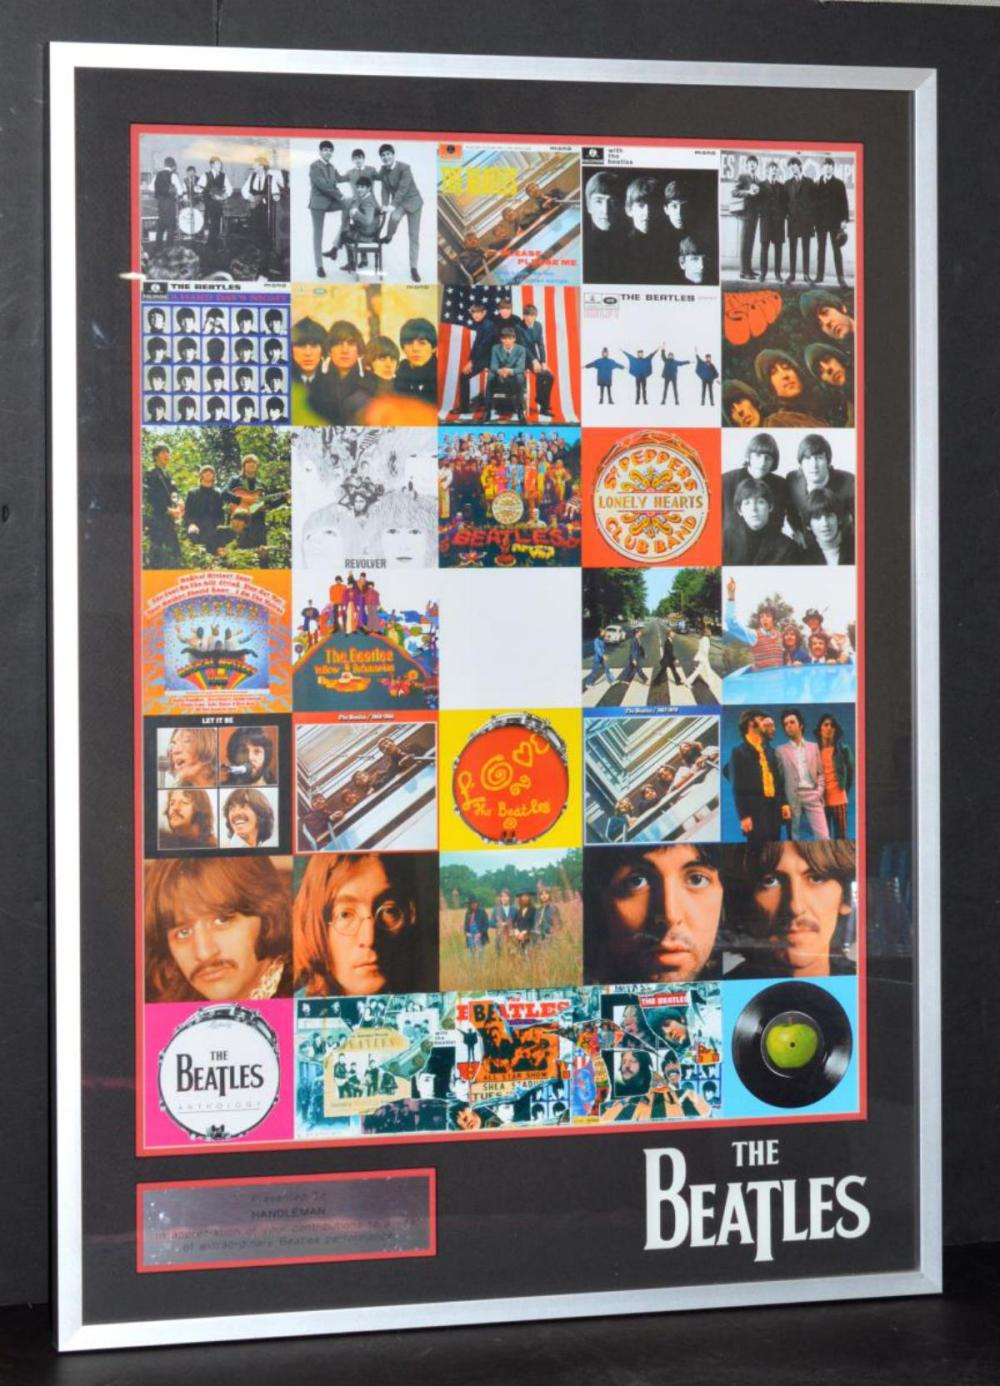 The Beatles Through The Years Album Covers Montage